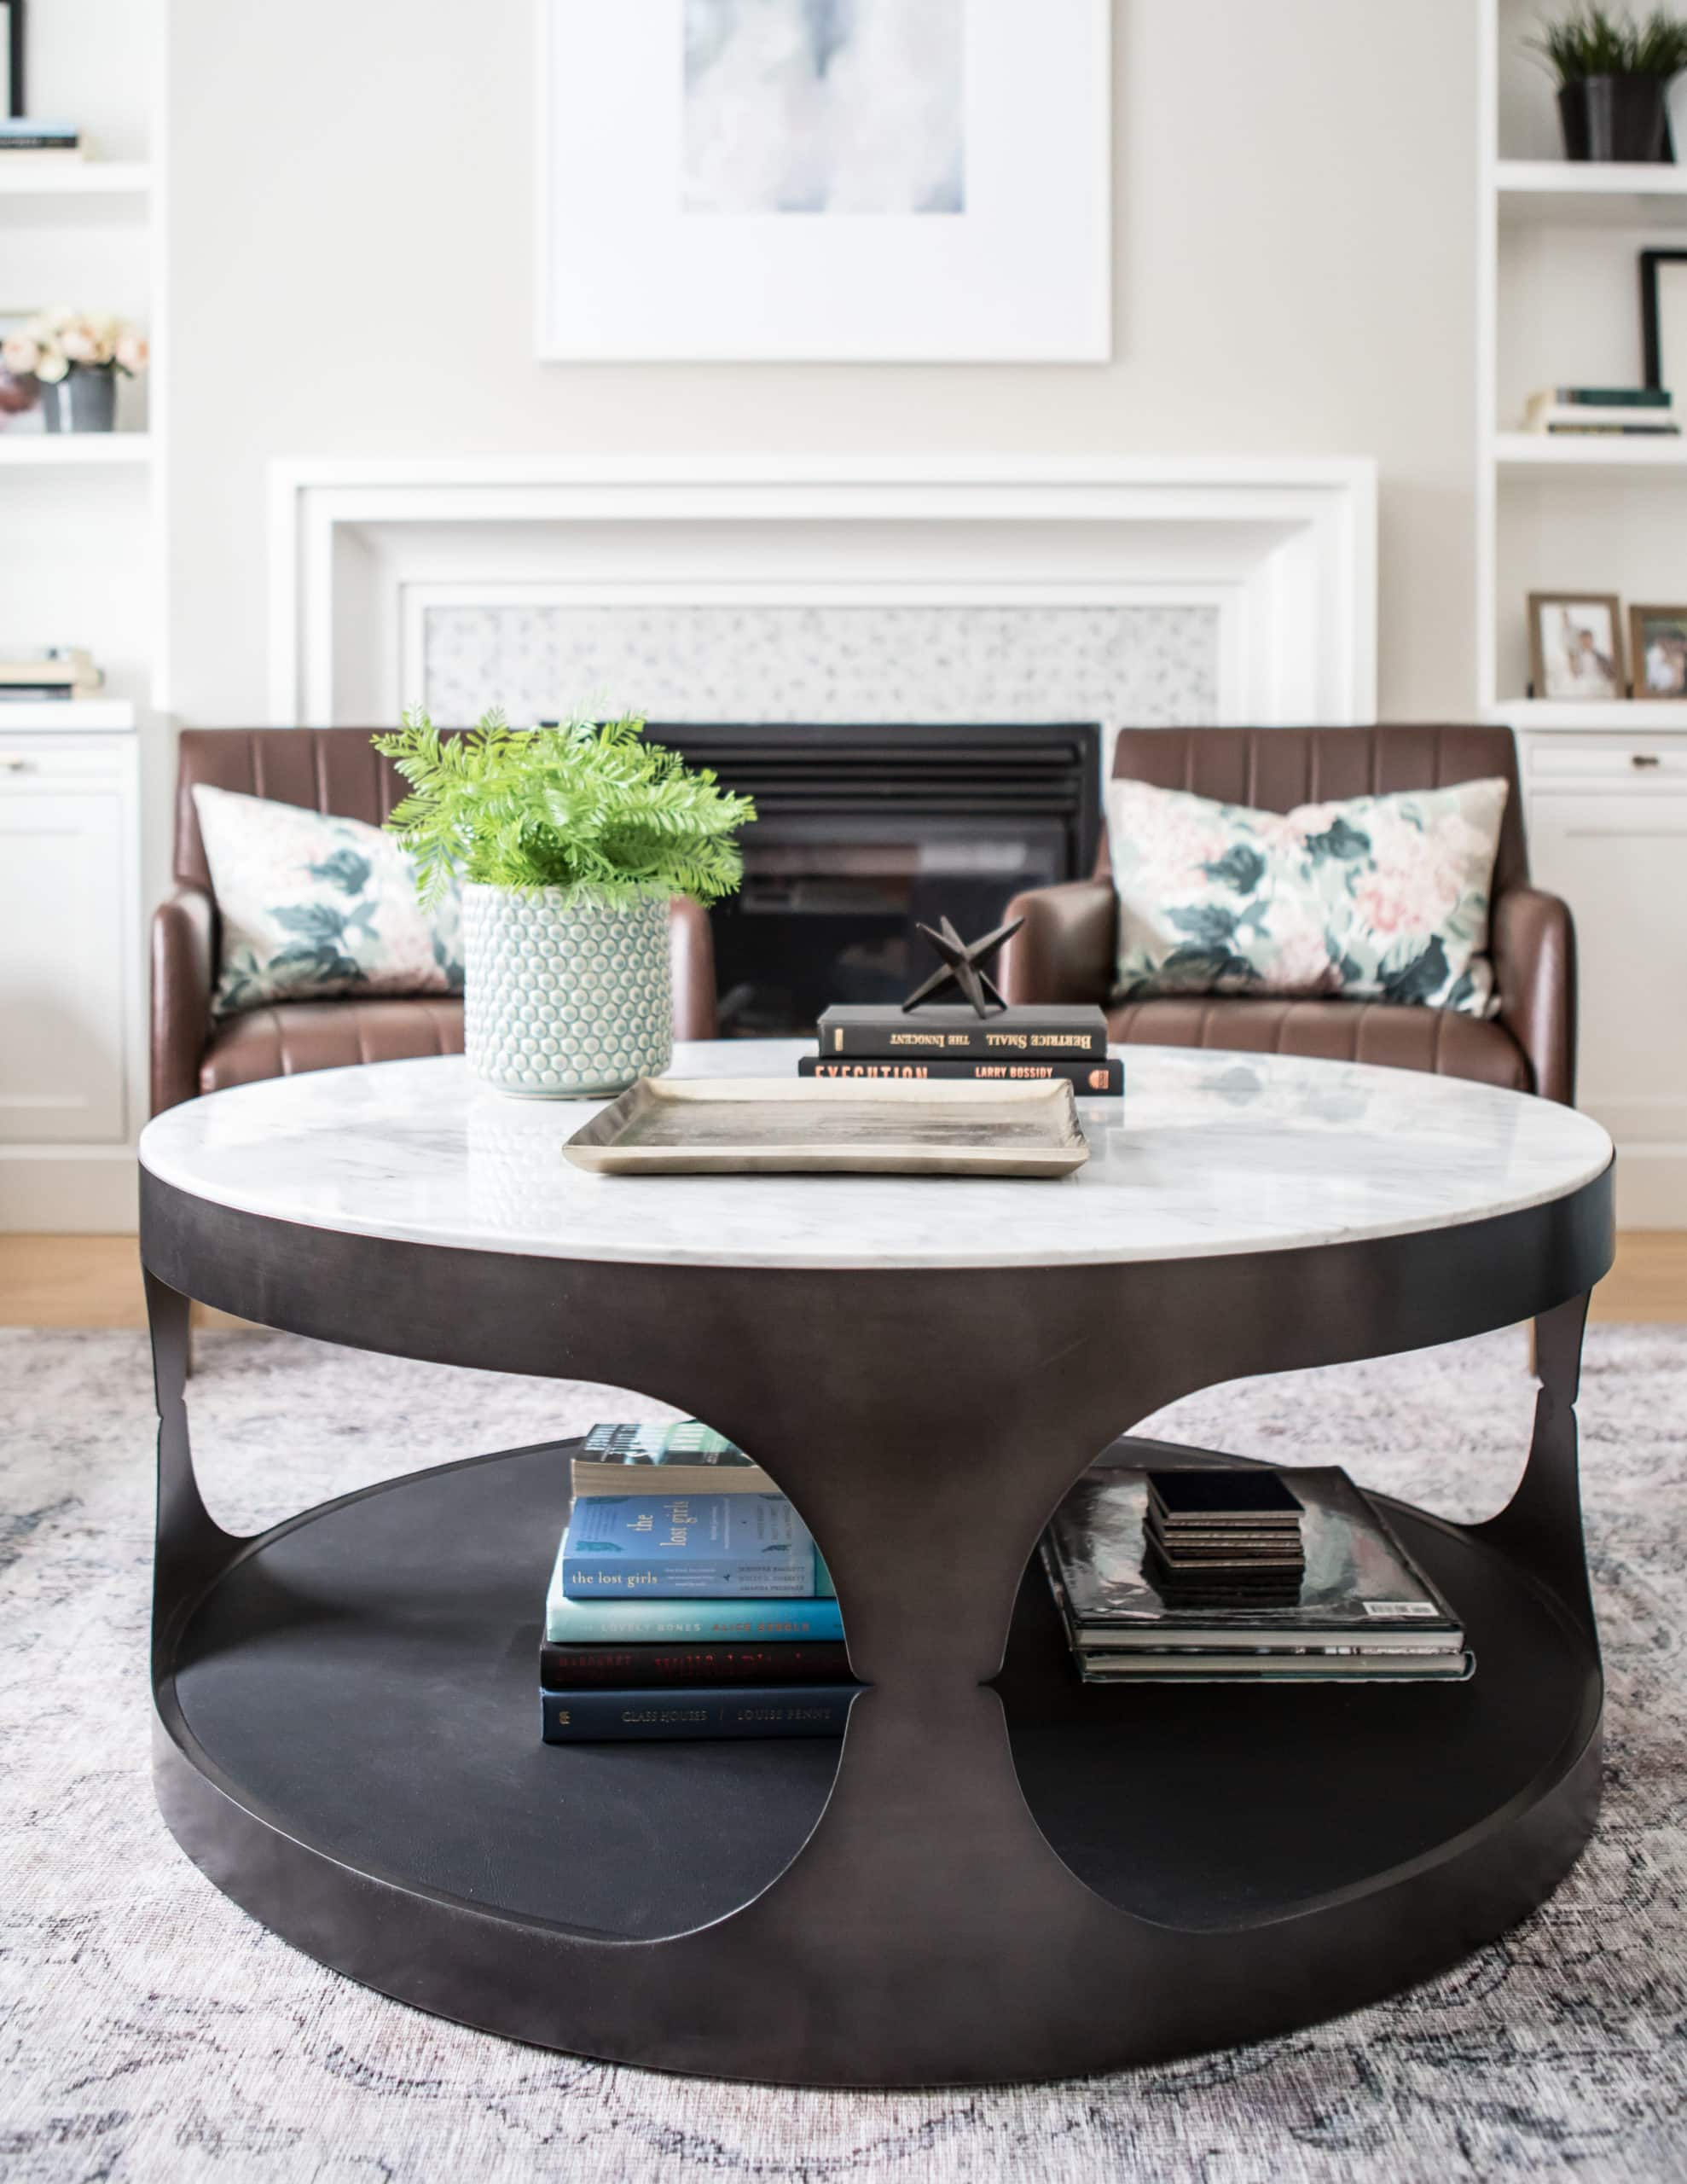 Modern, round table within a living room